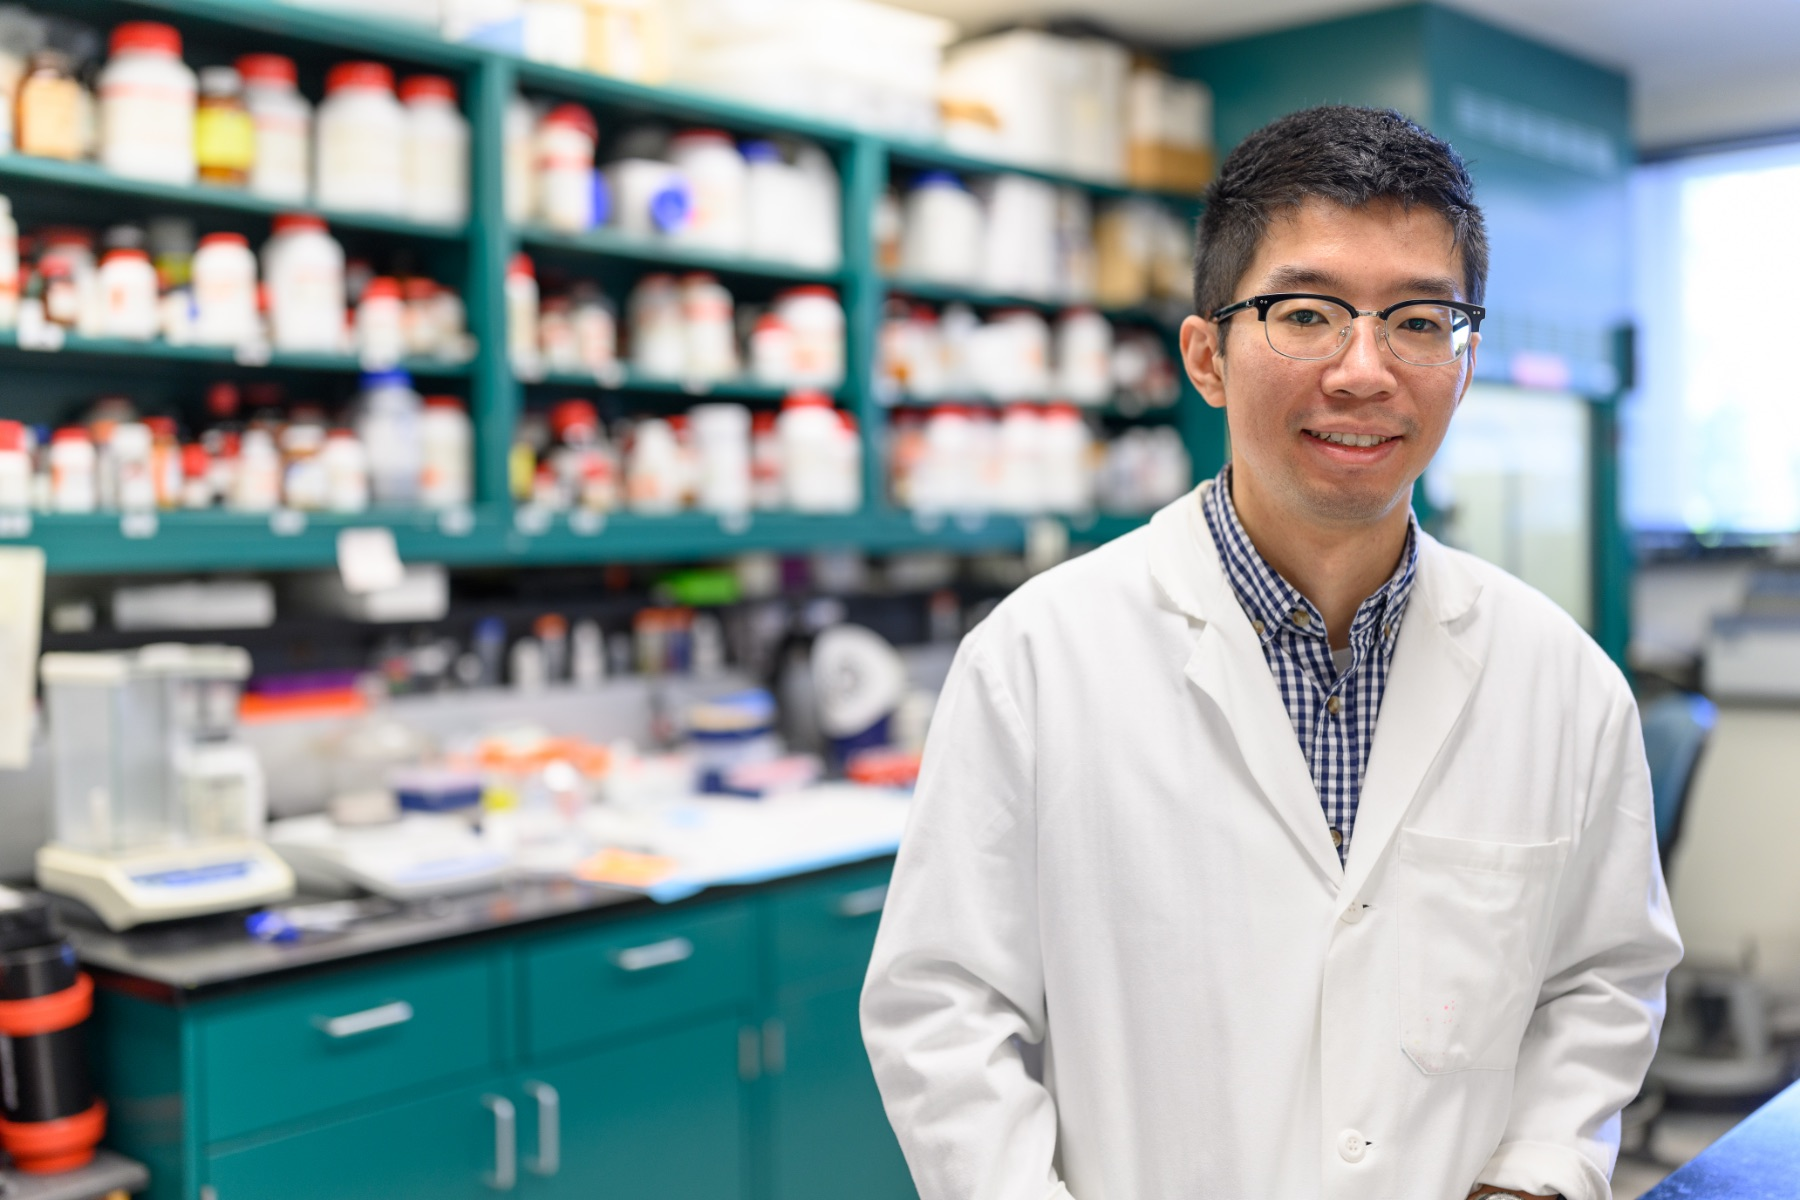 """Yueming """"Ronnie"""" Wu, a young East Asian man with short black hair, smiles for the camera as he stands in a laboratory. He is wearing a white lab coat over a blue gingham button-up shirt, and a pair of black-rimmed glasses."""